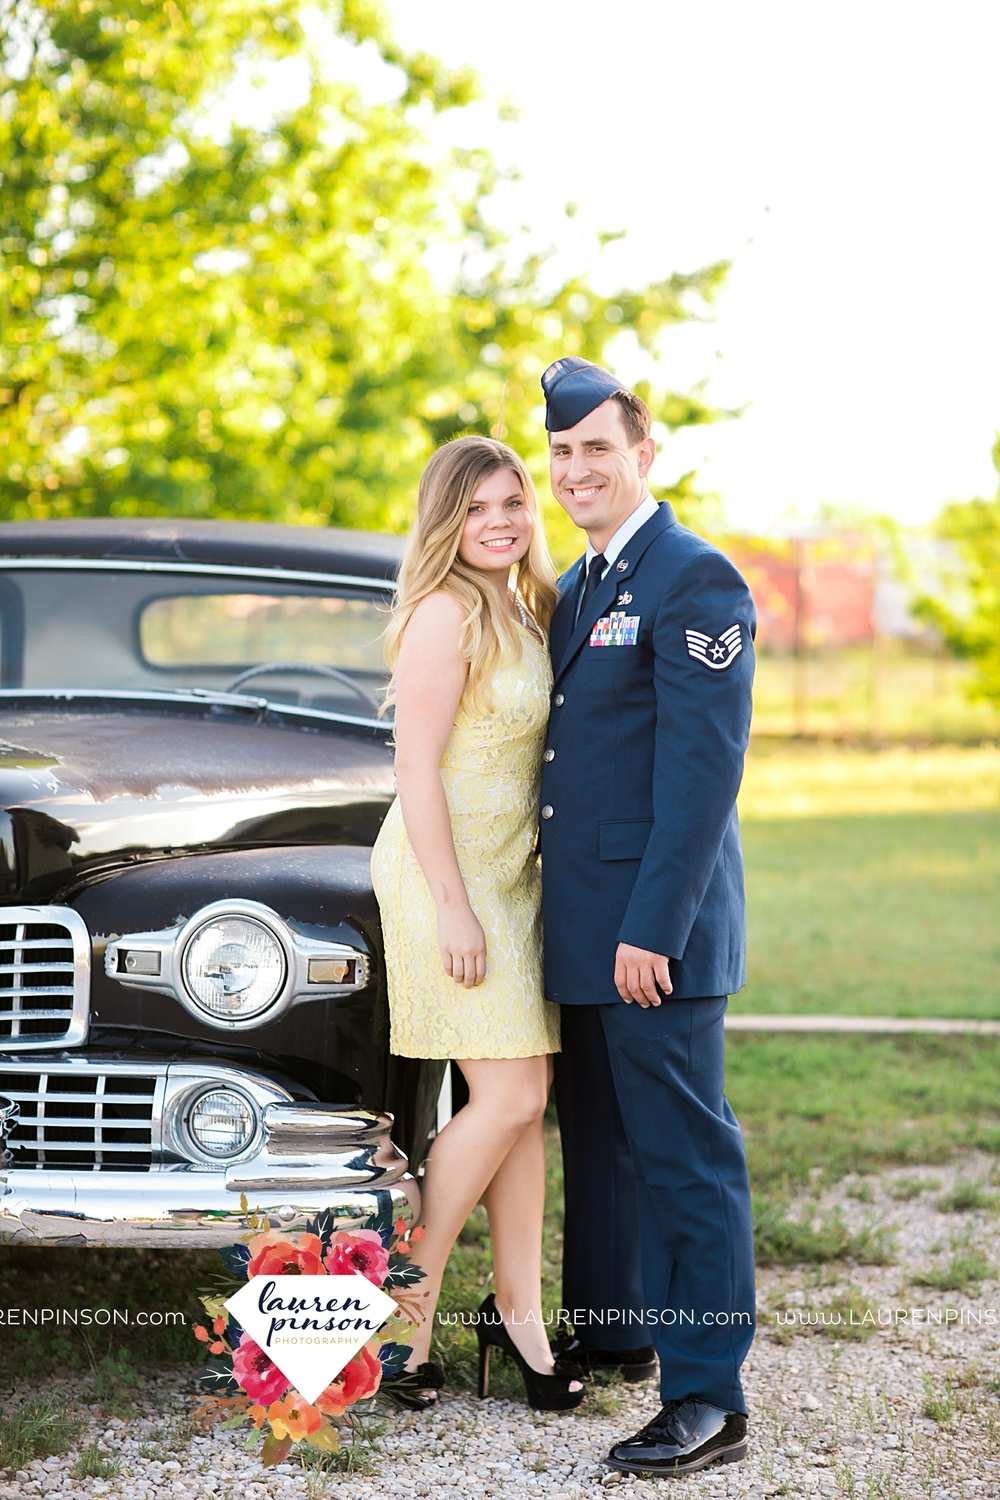 wichita-falls-texas-wedding-engagement-photographer-natural-soft-timeless-elegant-engaged-couples-sheppard-afb-classic-car-vintage-photographer_2367.jpg